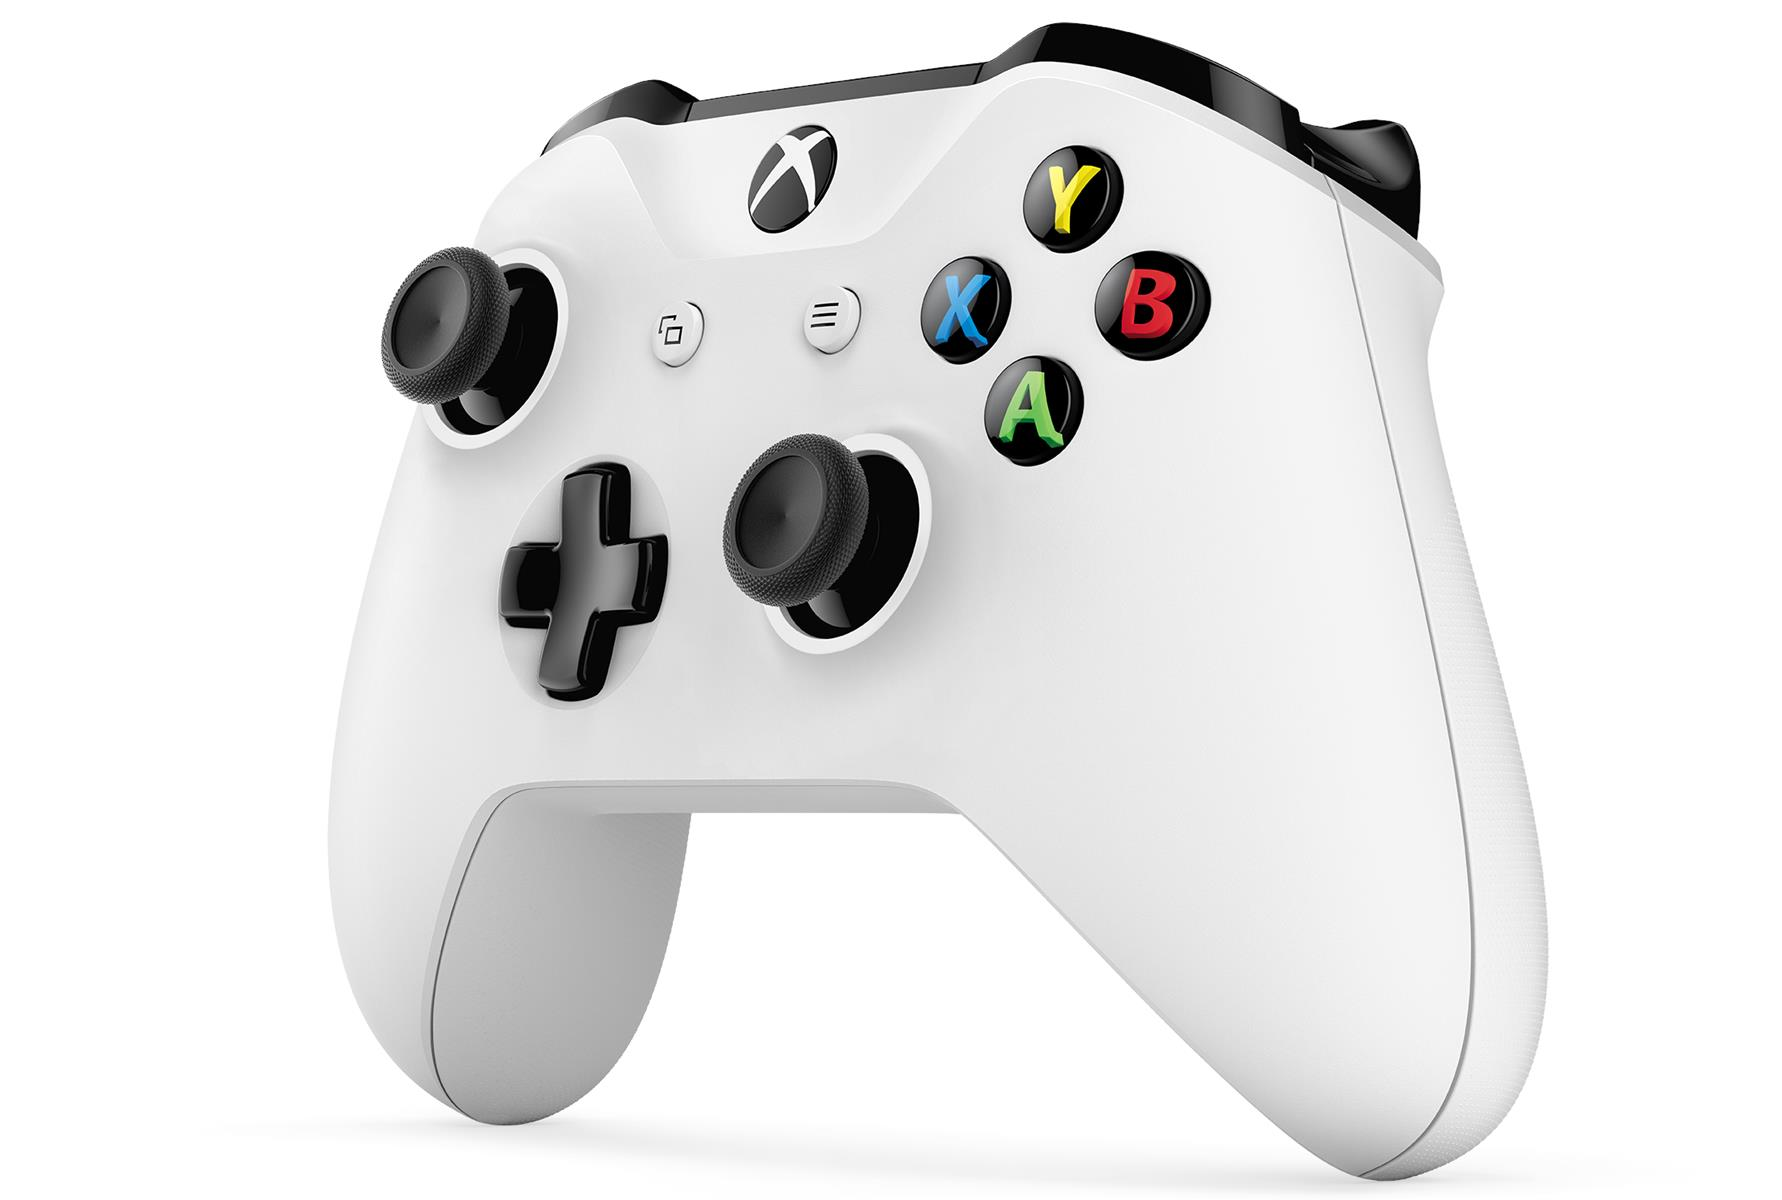 New Xbox One Game Controller : Xbox one s review a sleek redesign to set things right